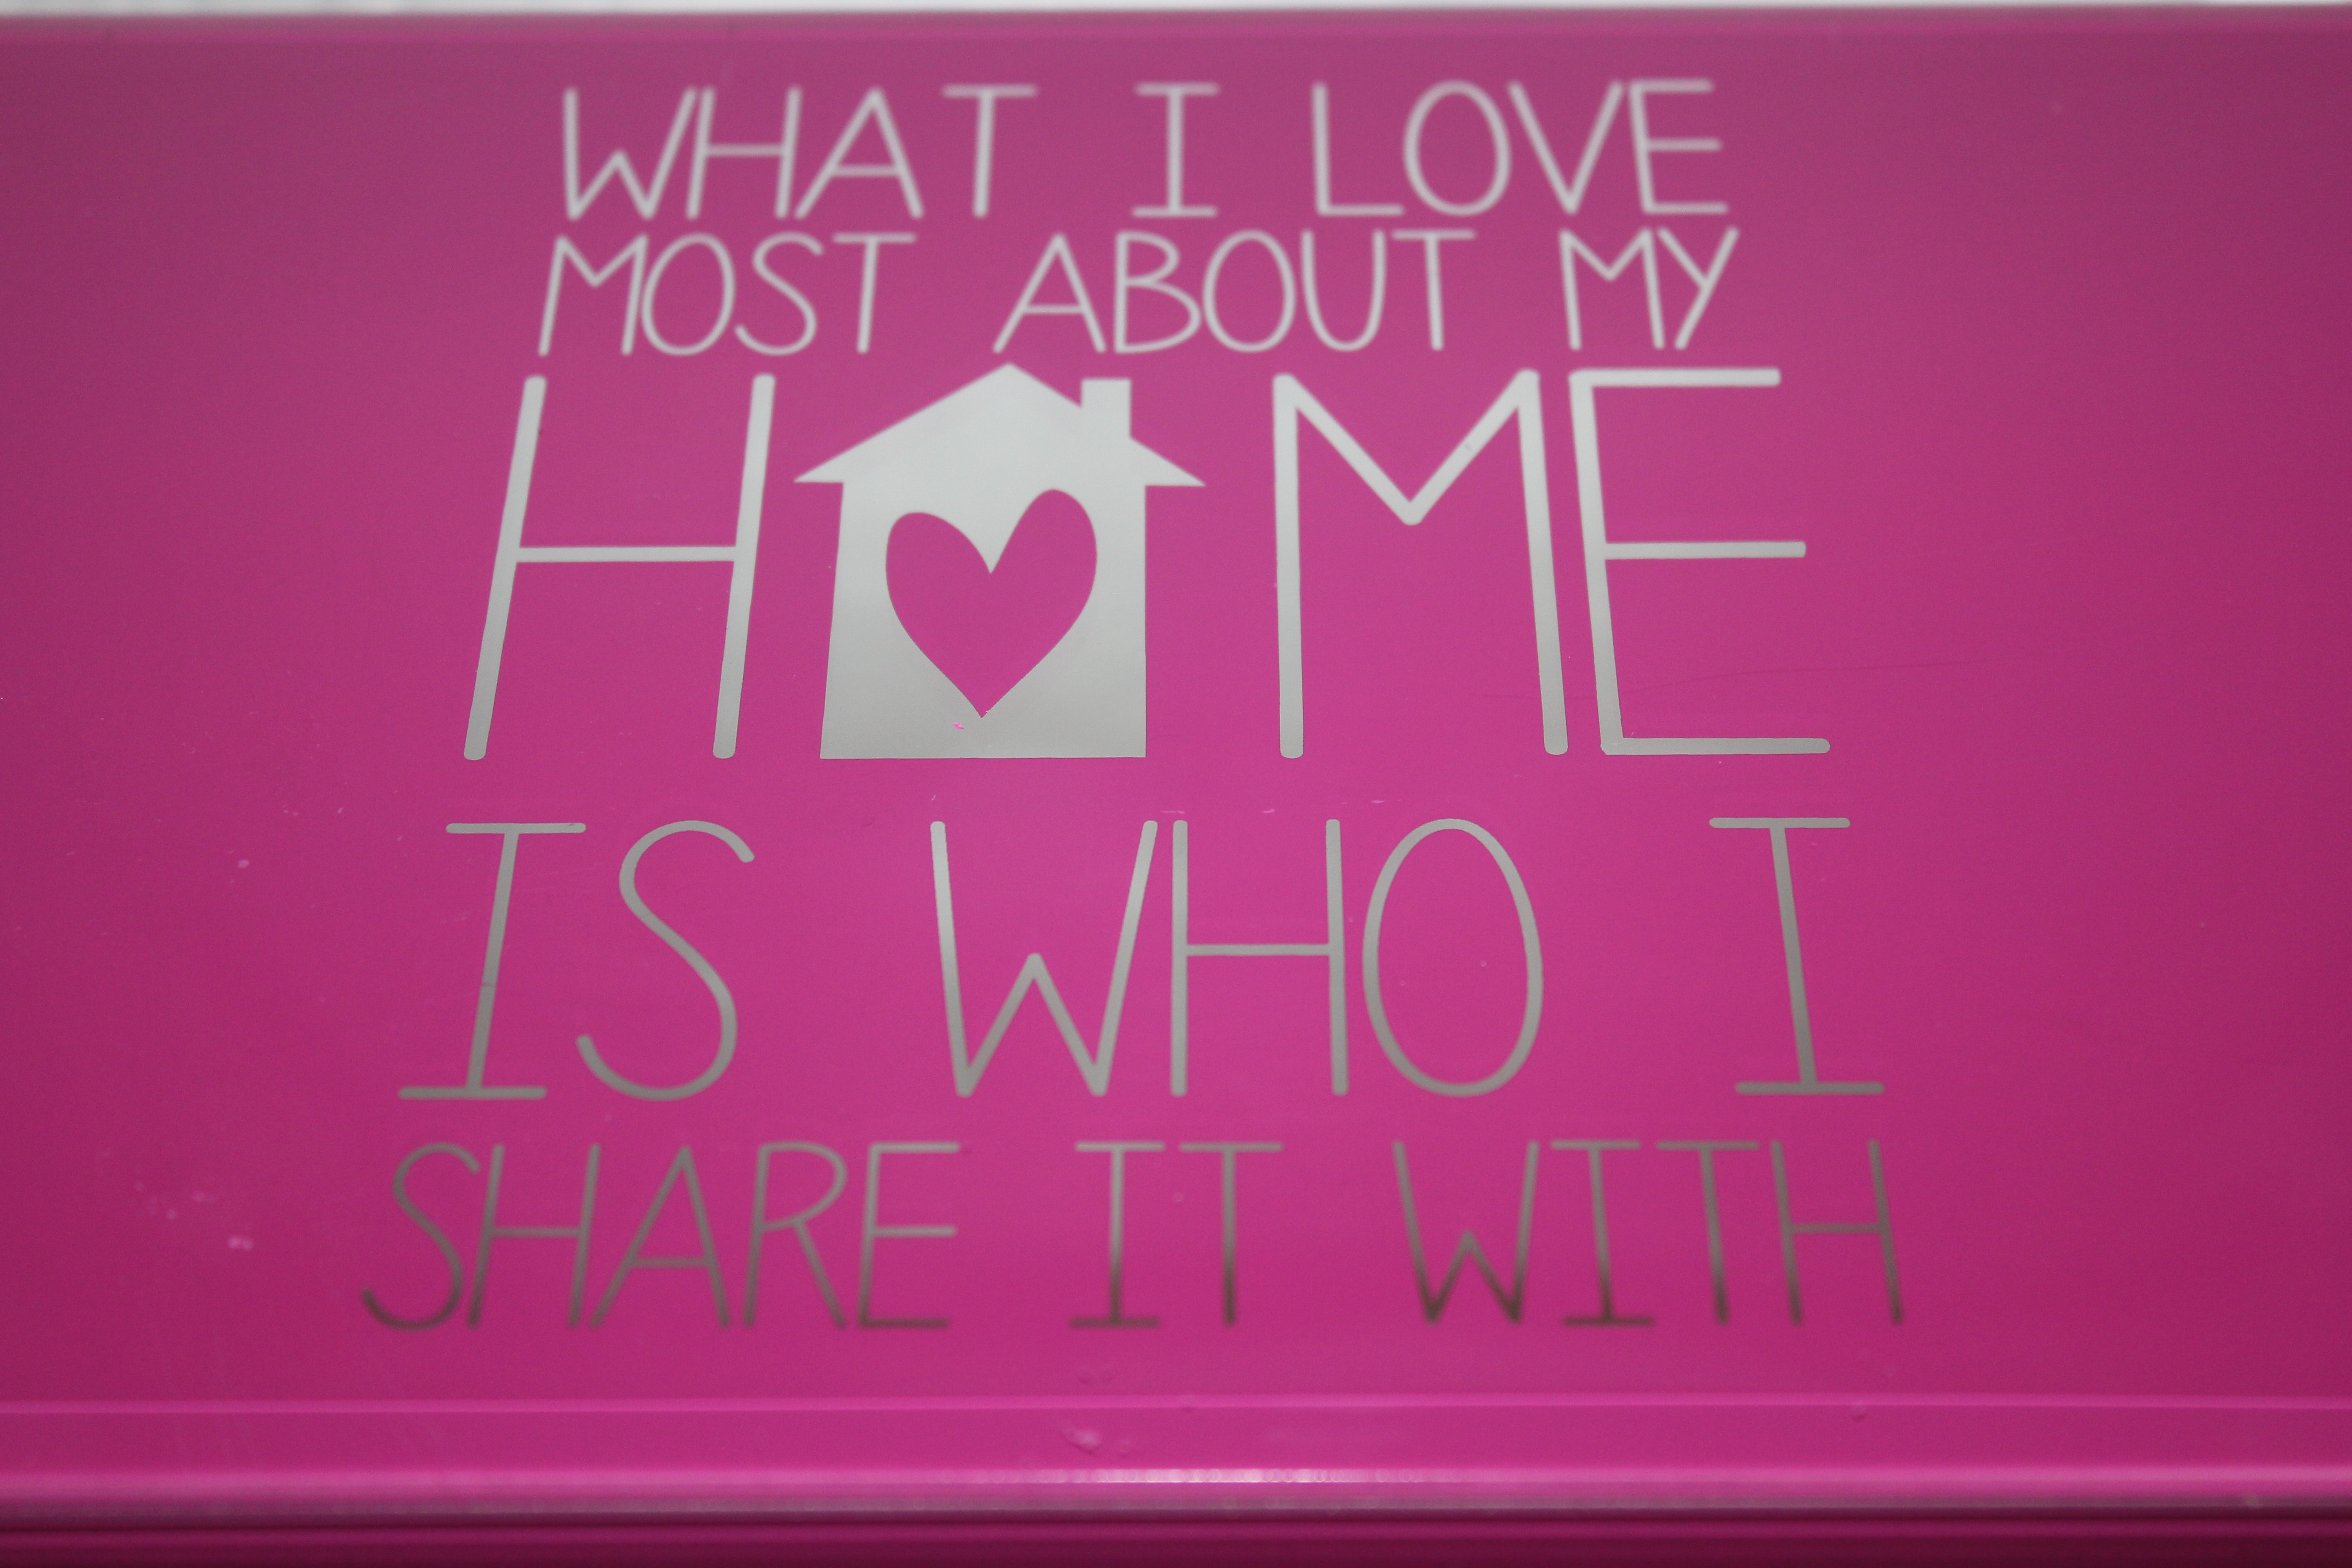 What I love about my home...